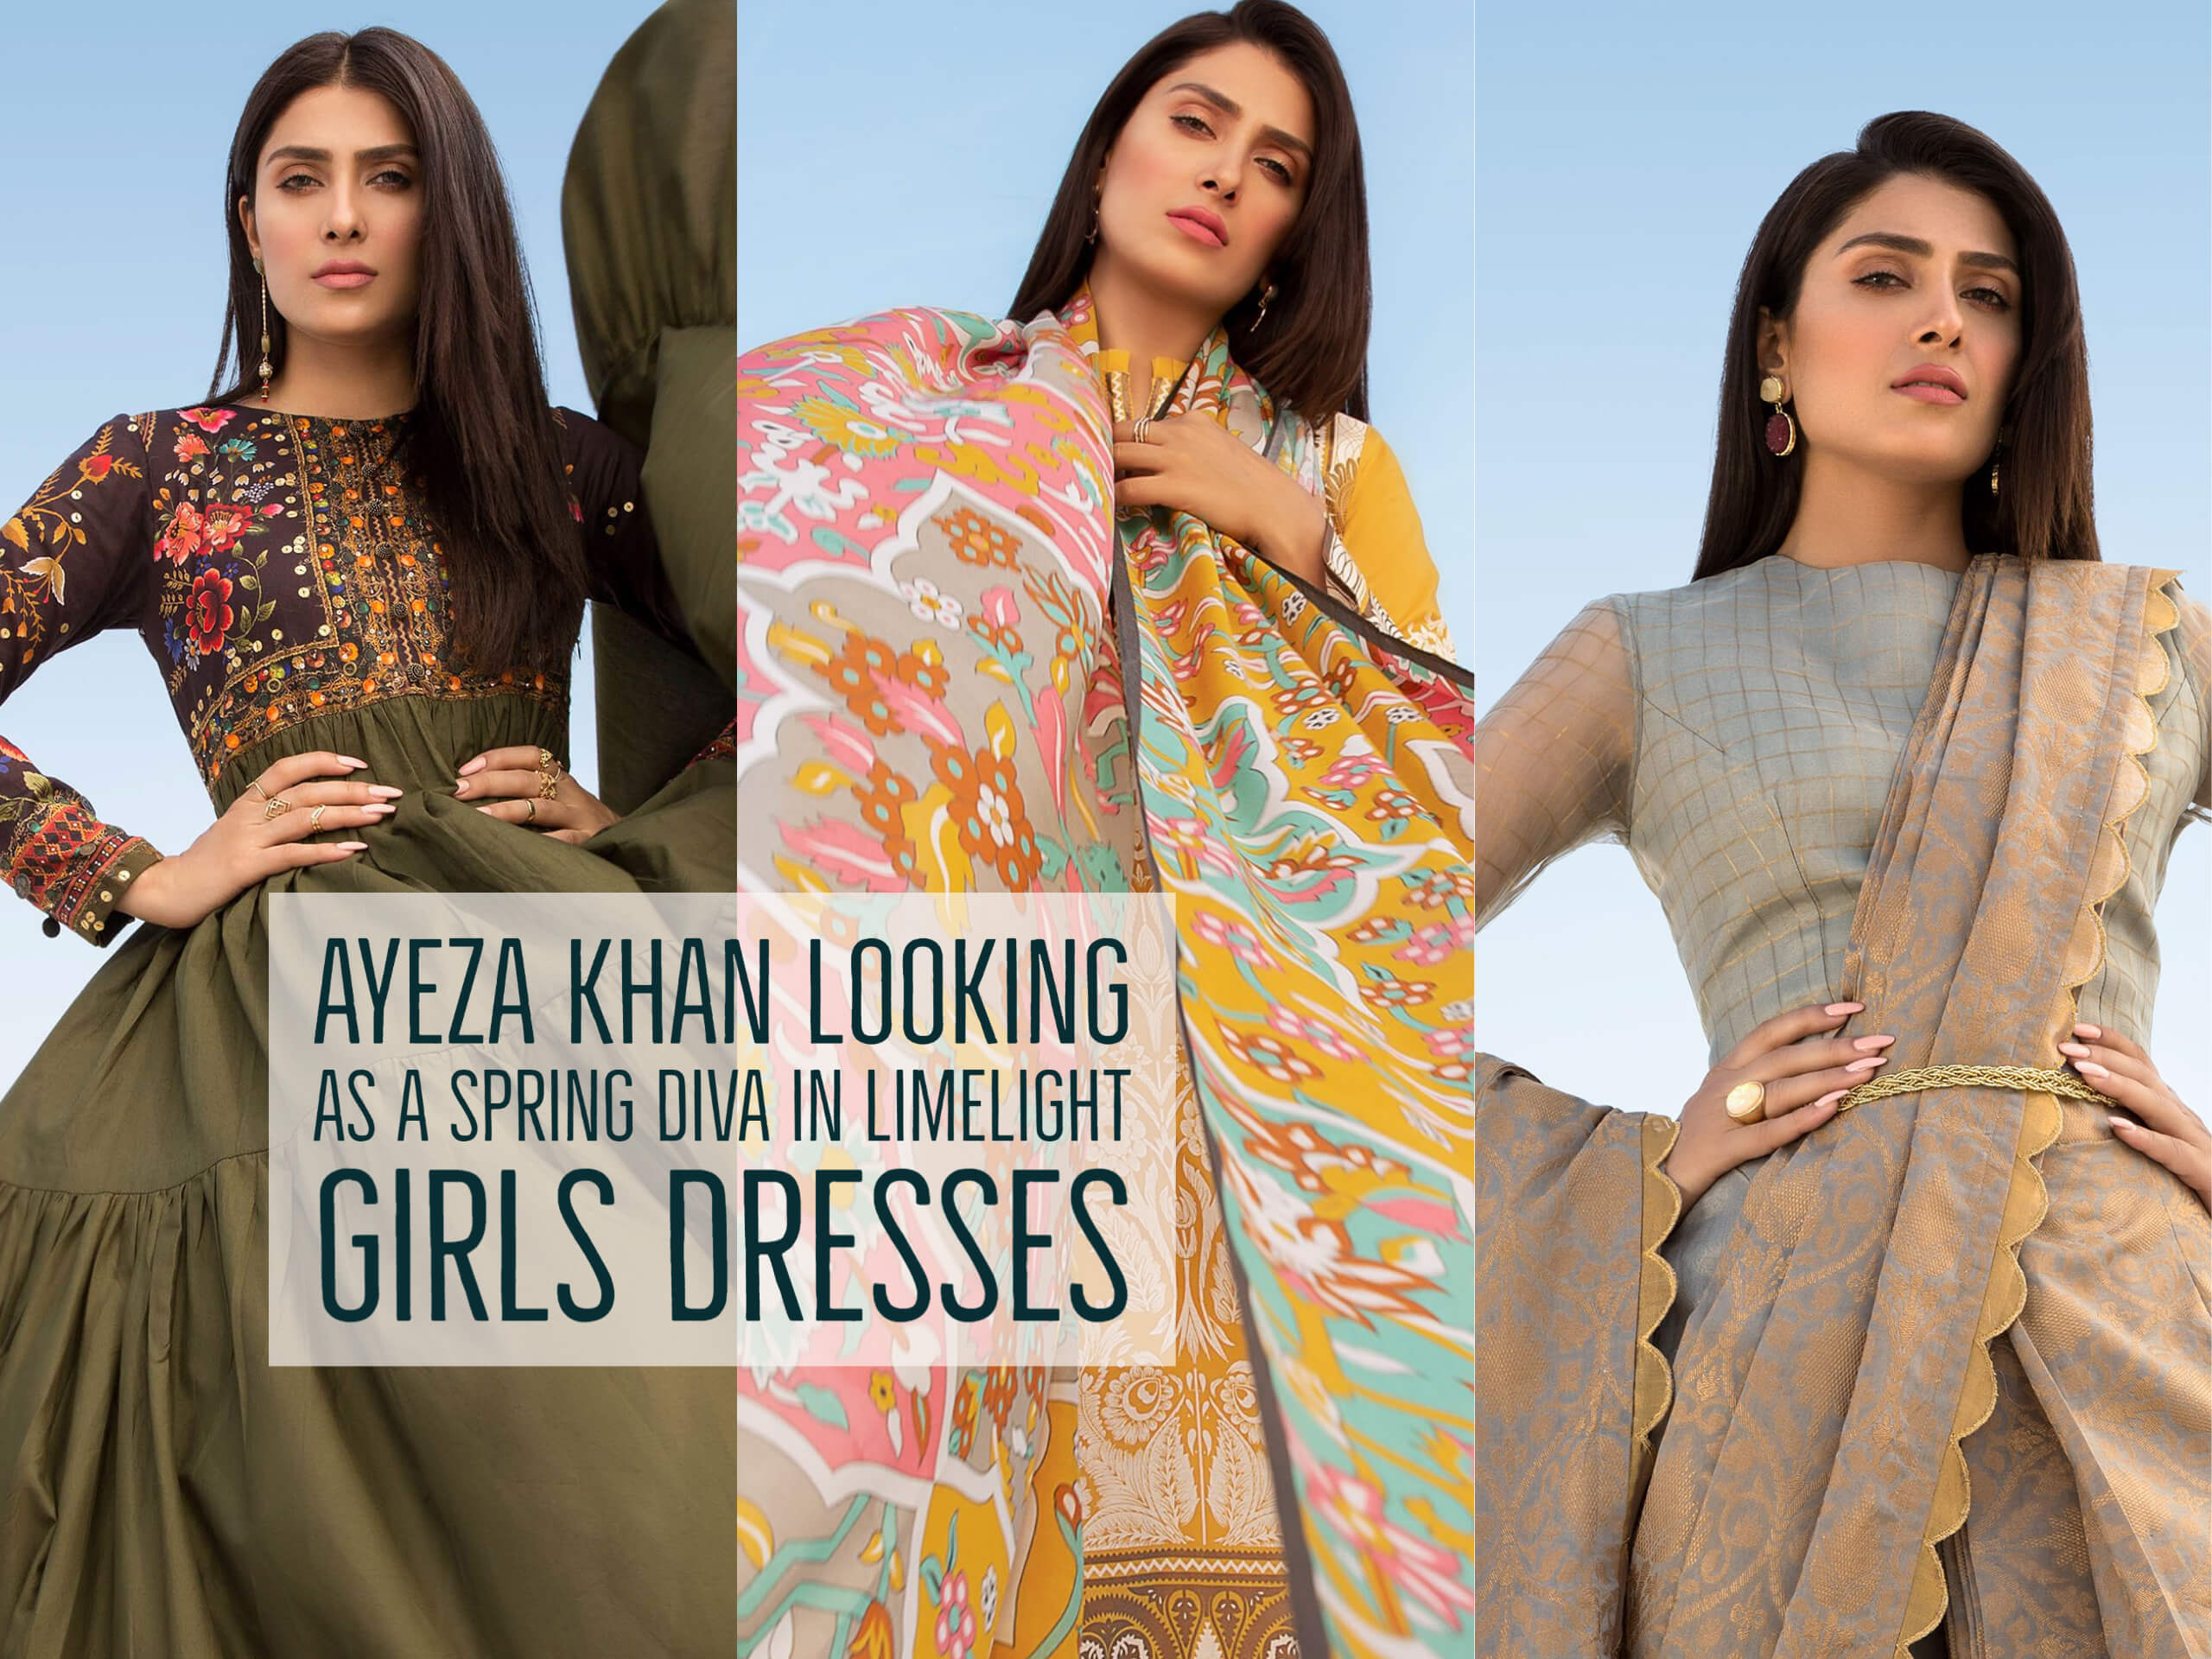 Ayeza Khan Looking As A Spring Diva In Limelight Girls Dresses